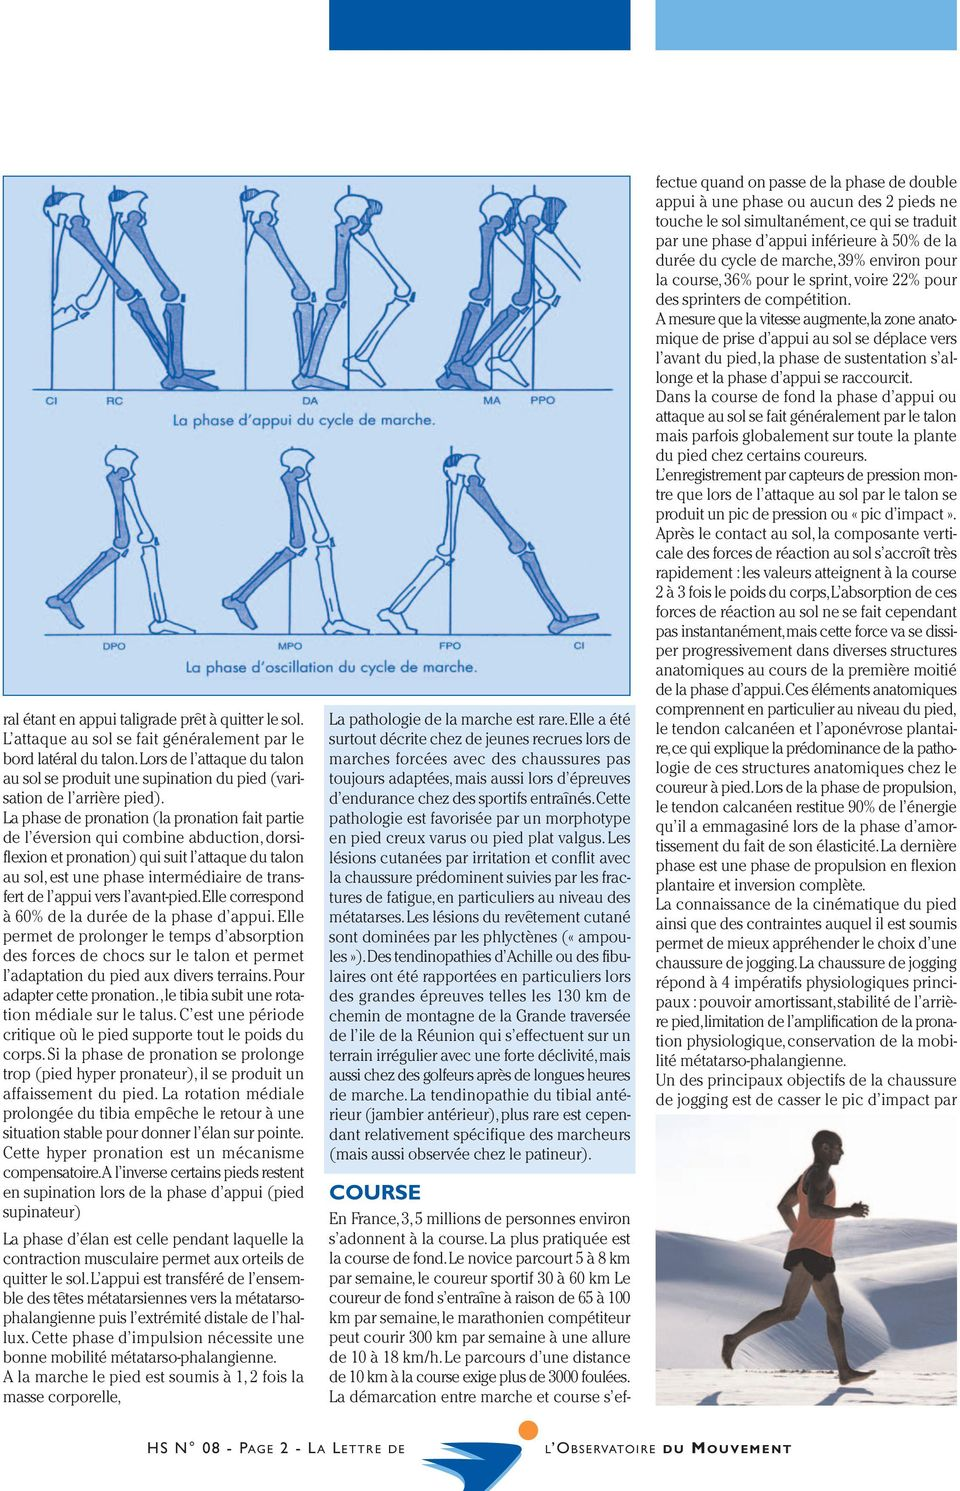 La phase de pronation (la pronation fait partie de l éversion qui combine abduction,dorsiflexion et pronation) qui suit l attaque du talon au sol,est une phase intermédiaire de transfert de l appui